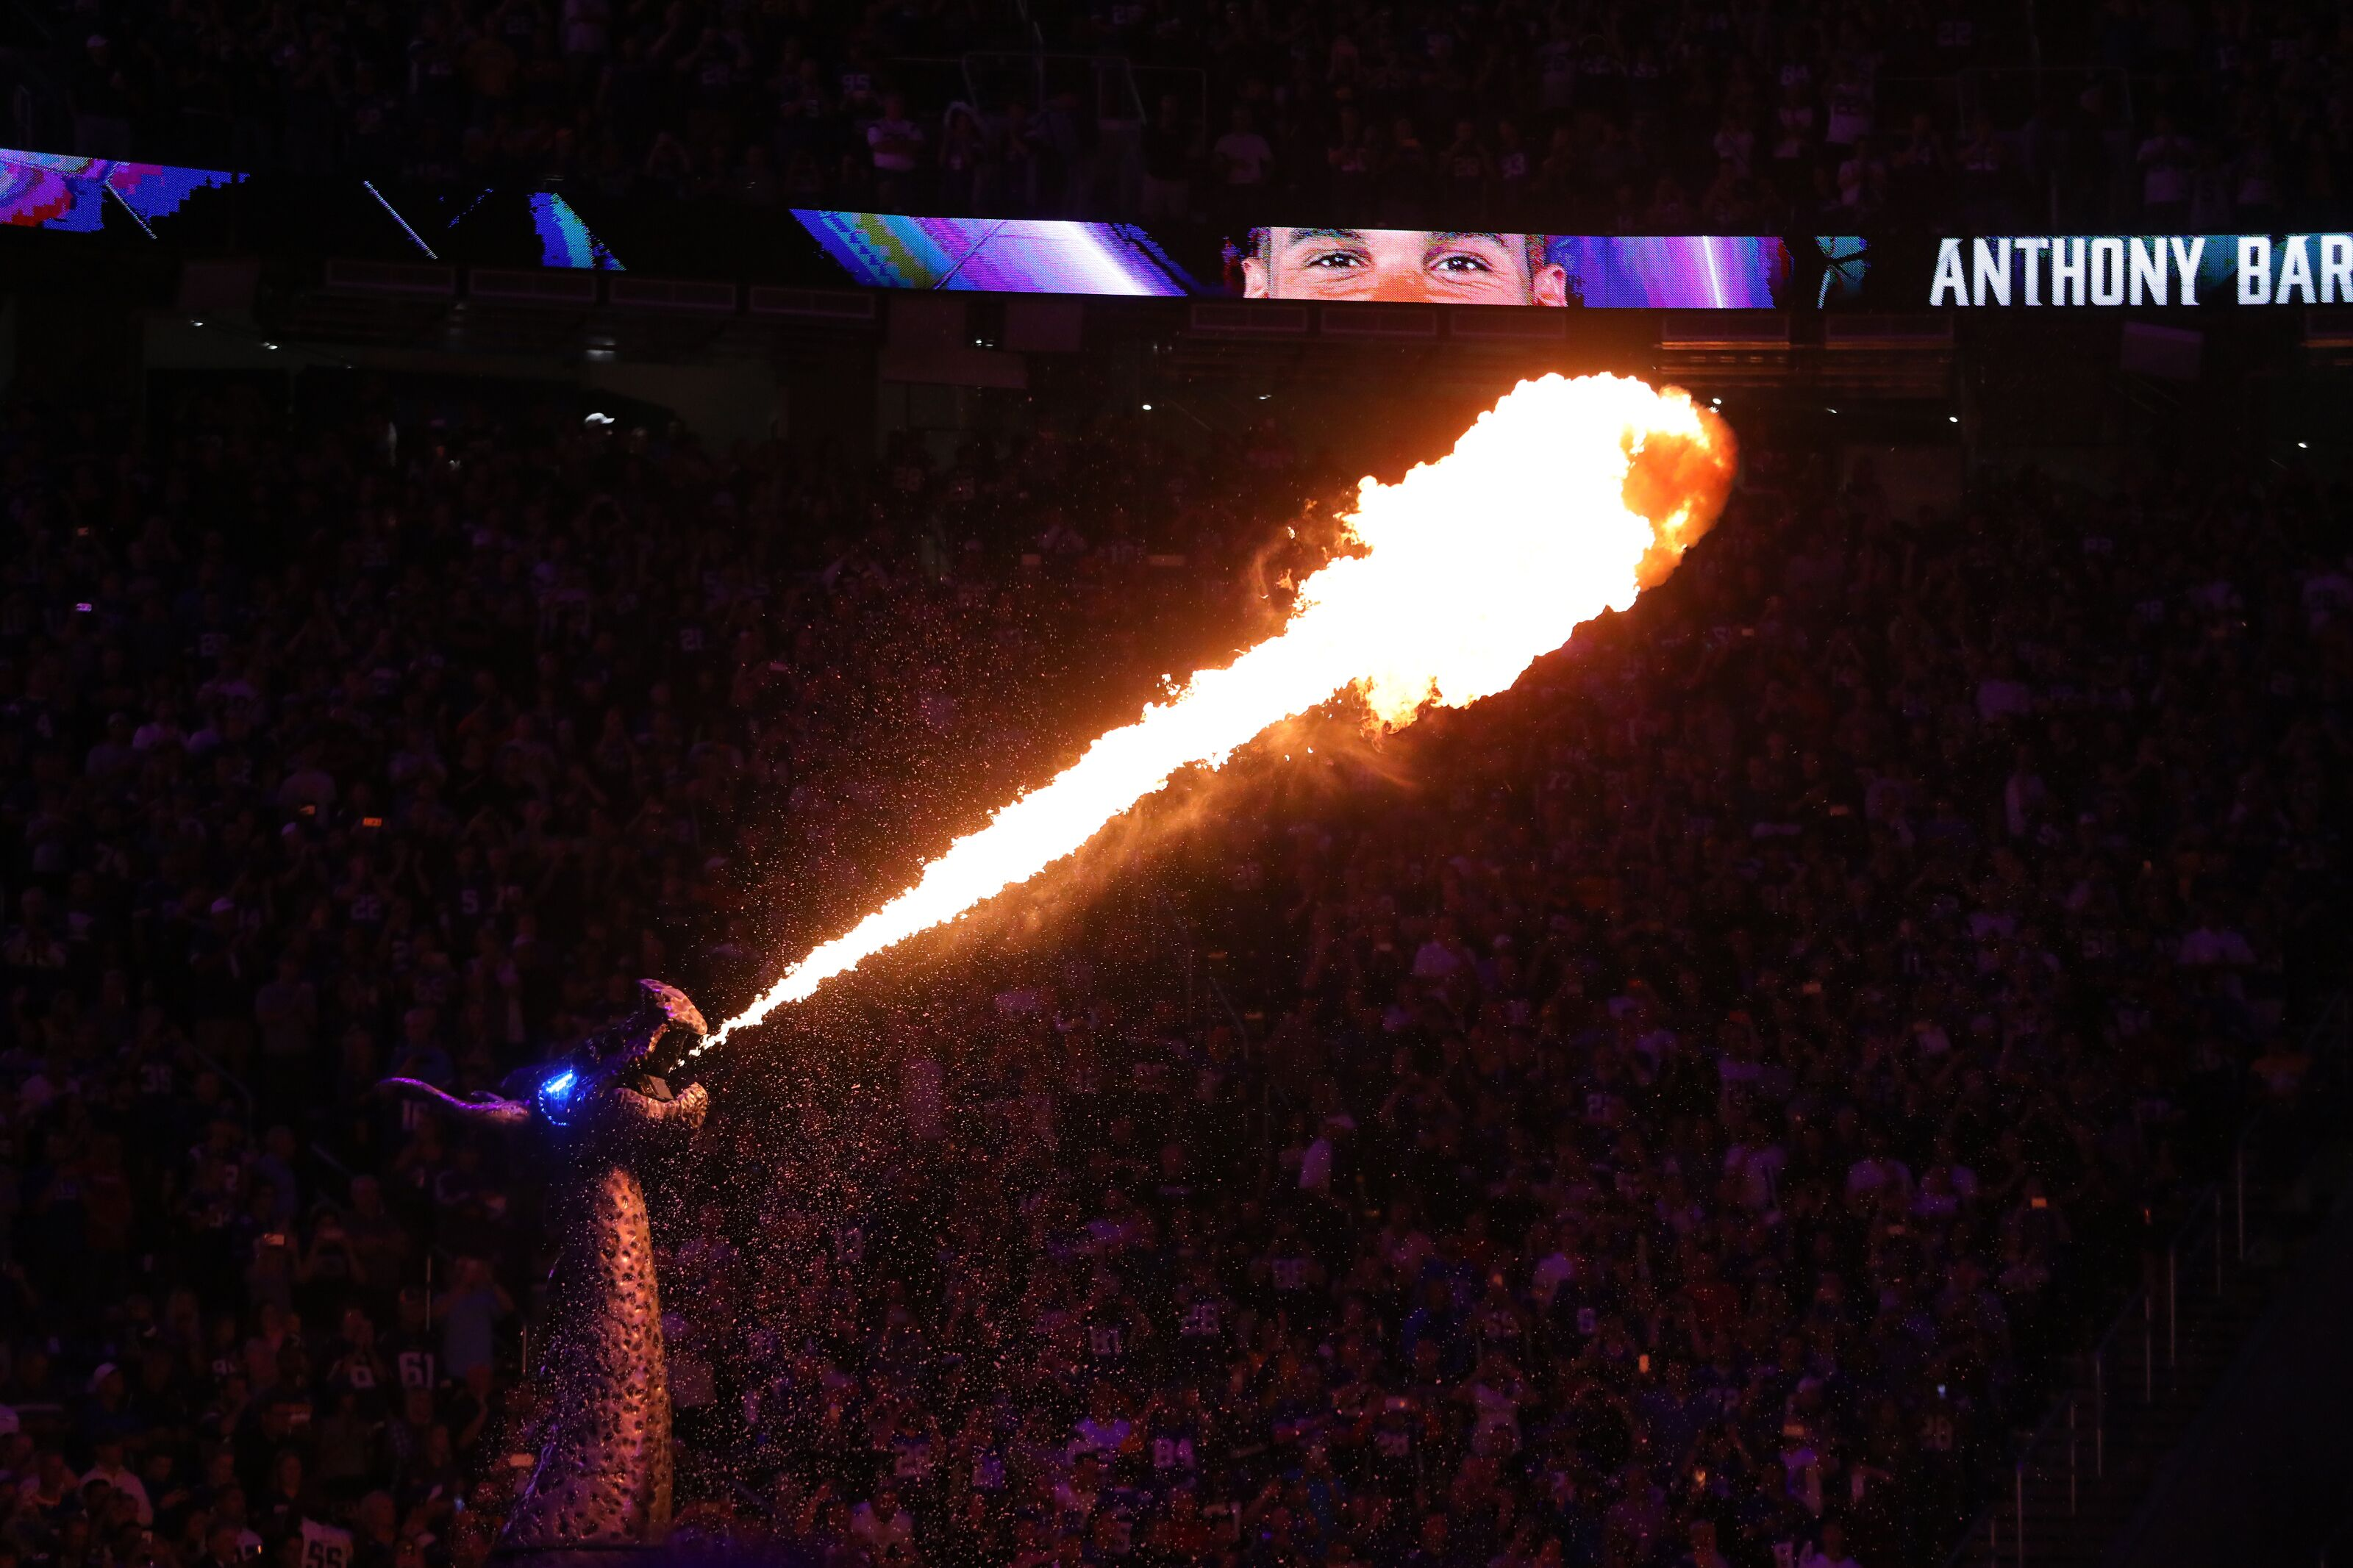 That one time a fan caught on fire during a Vikings game